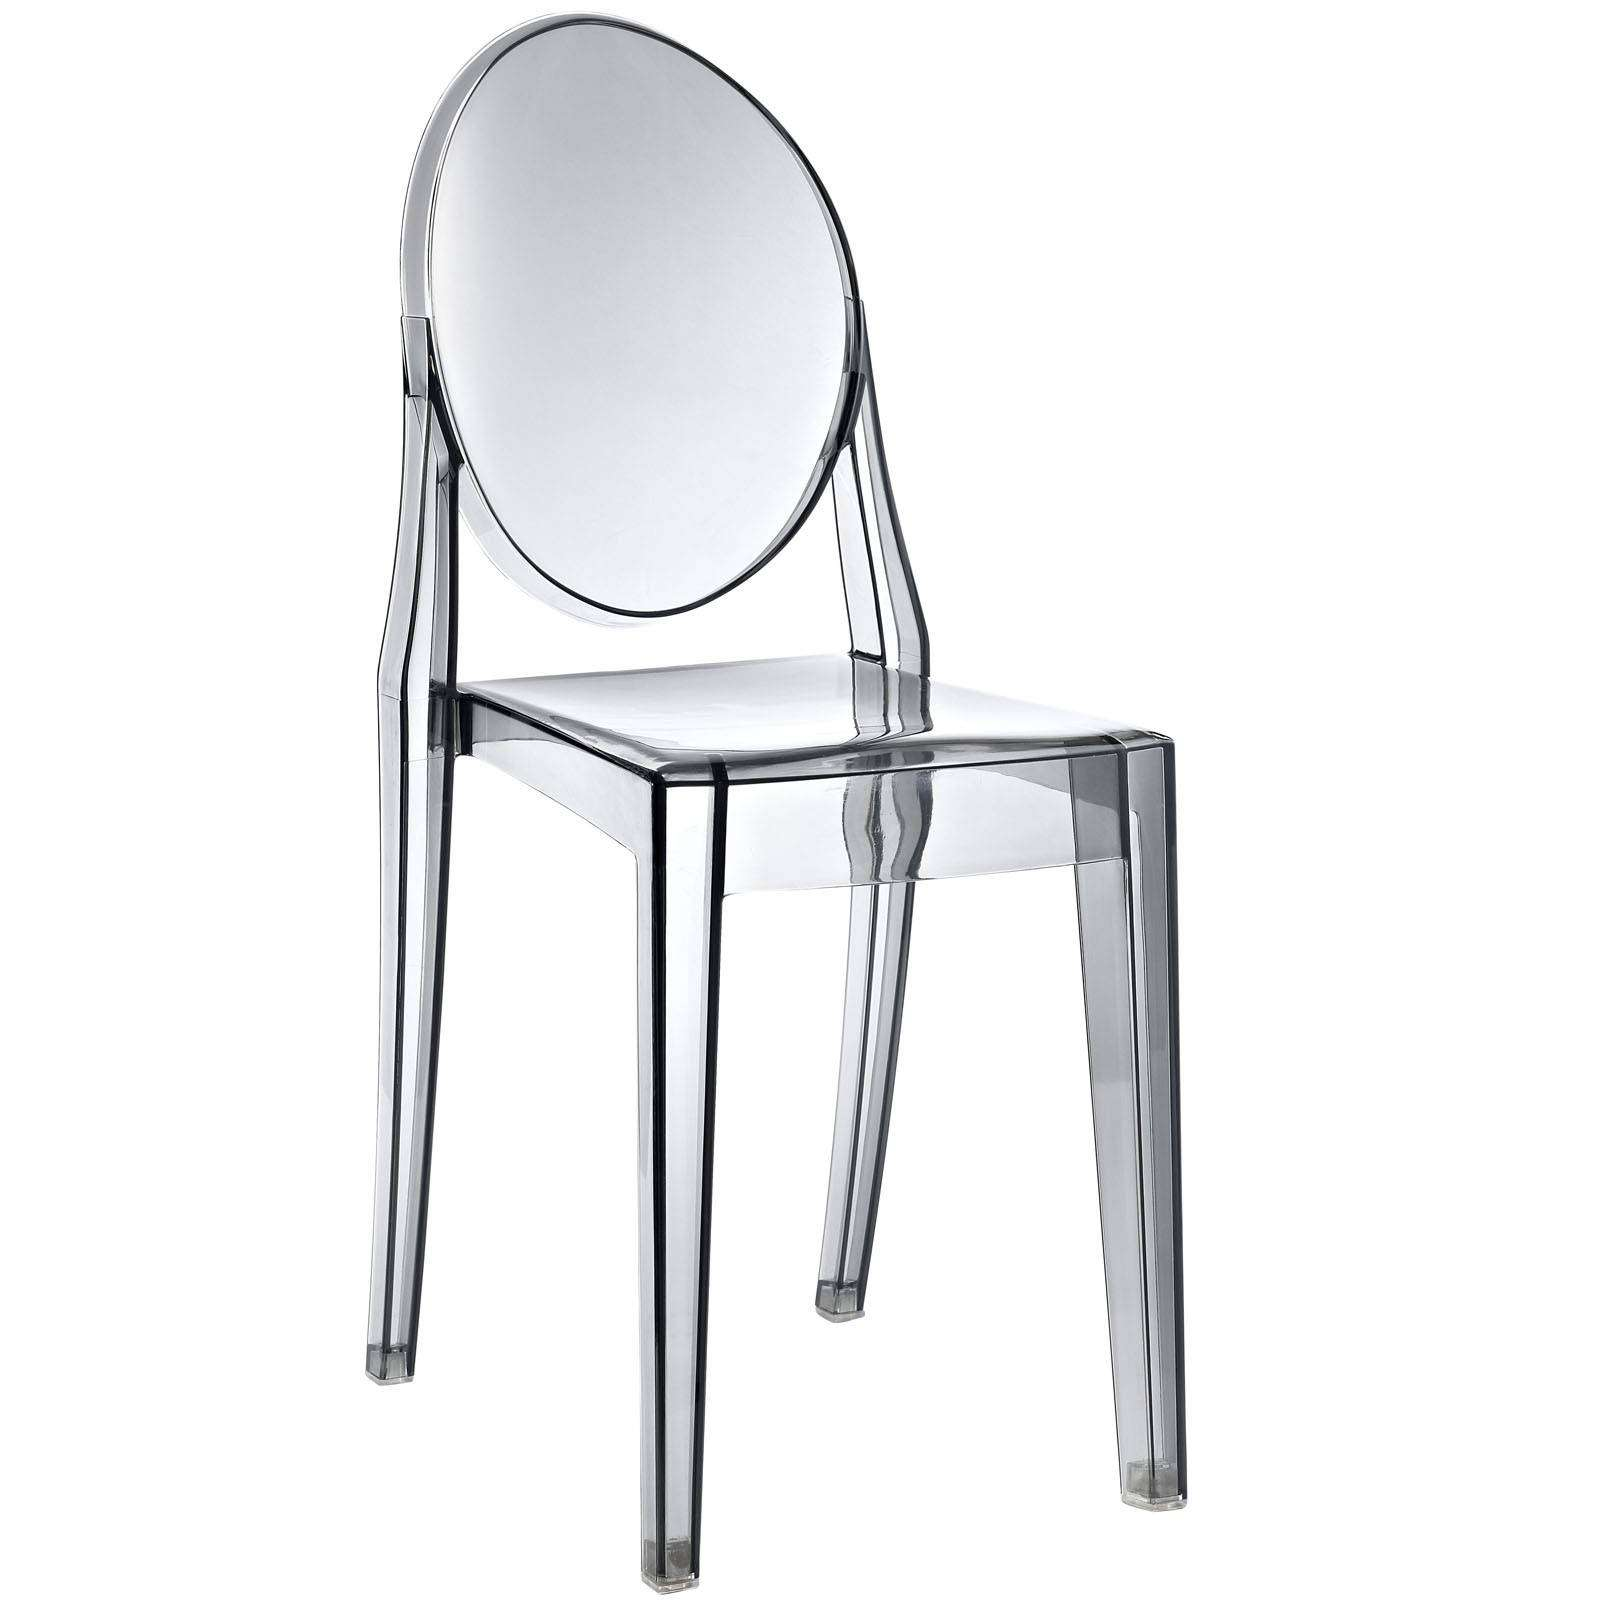 Philippe starck style victoria ghost side chair for Chaise ghost starck